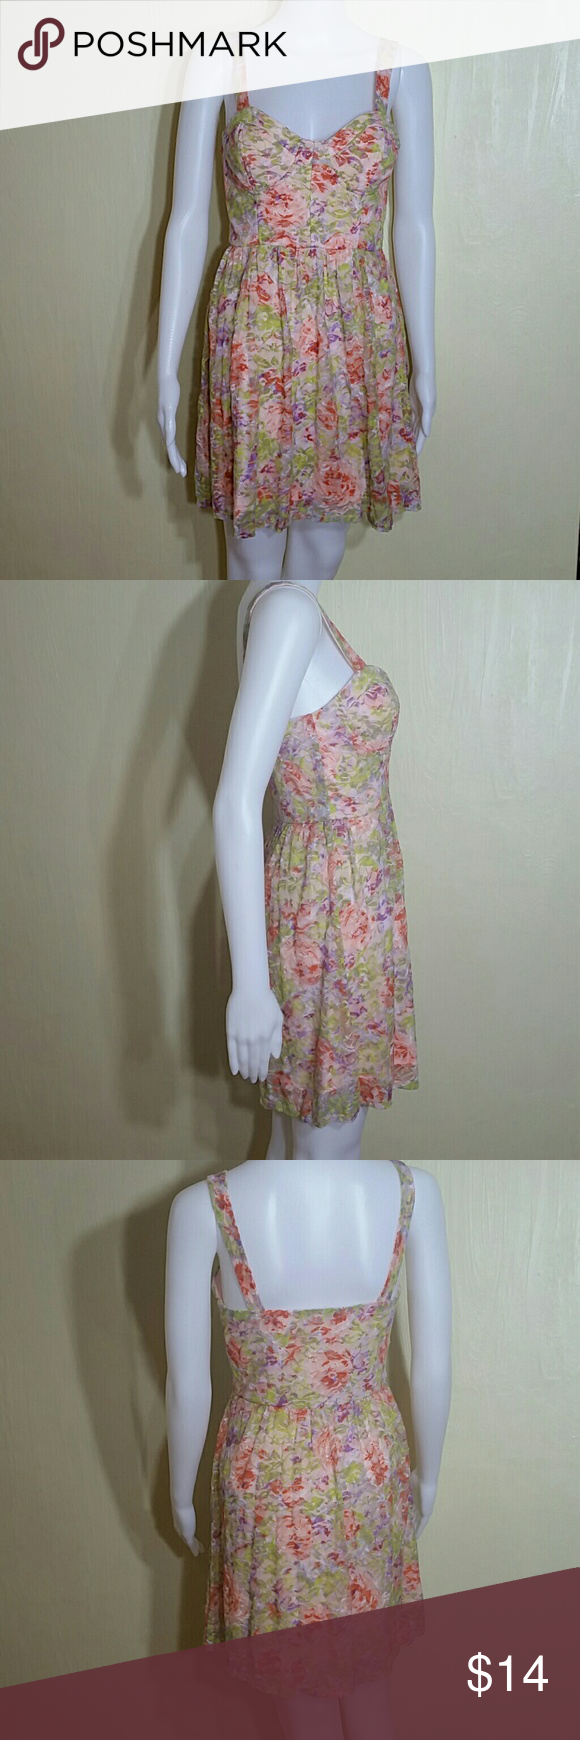 Delias Peach Floral Lace Dress This dresses base color is a soft peach with a floral print of lime green, darker green, purple, and orange splashes of color. This dress is new without tags. It has never been worn. I absolutely love it but it just clashes with my skin tone. delias Dresses